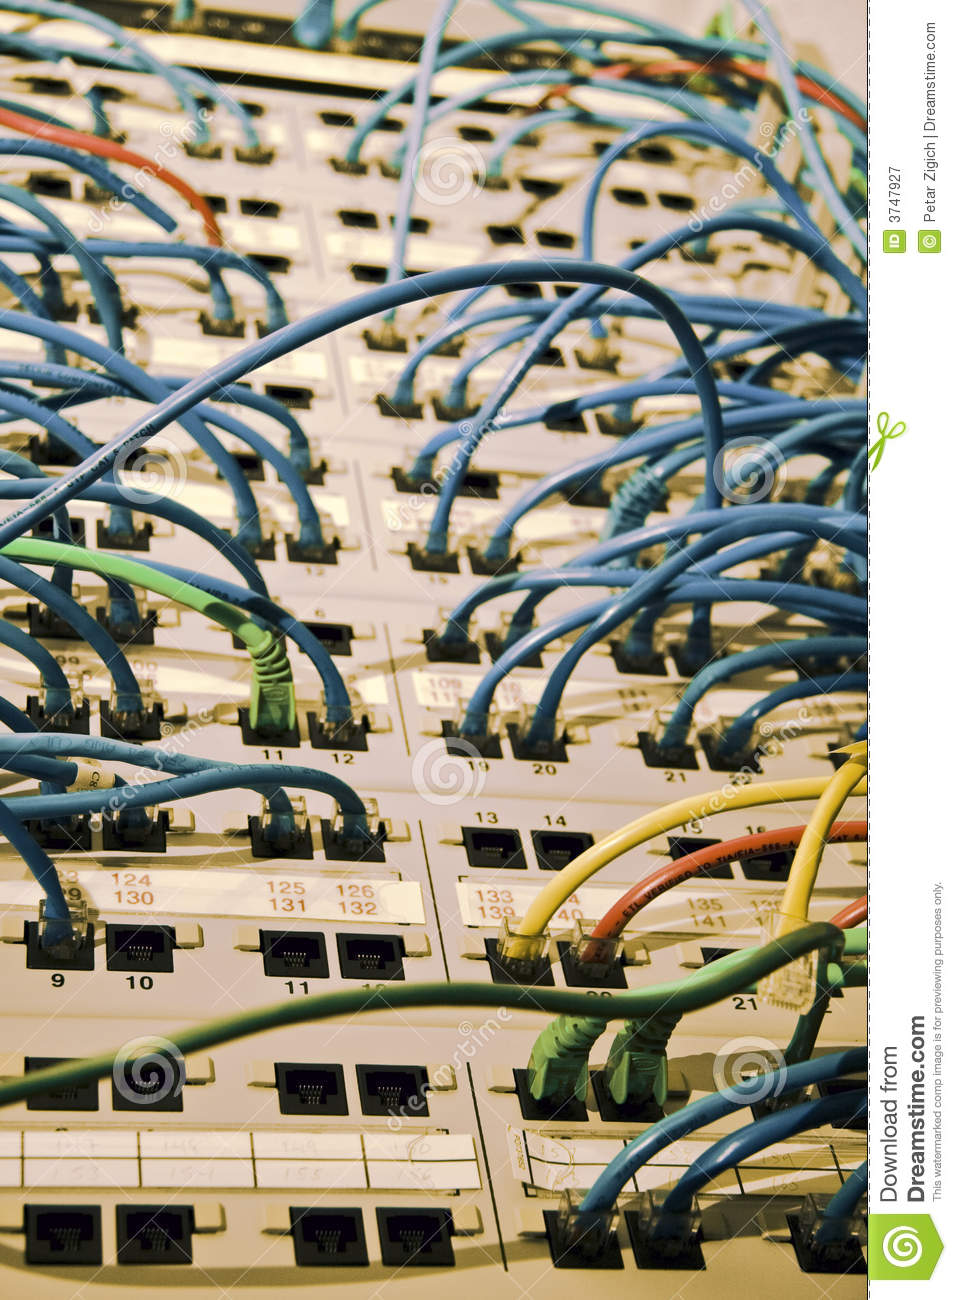 Network cables and hubs